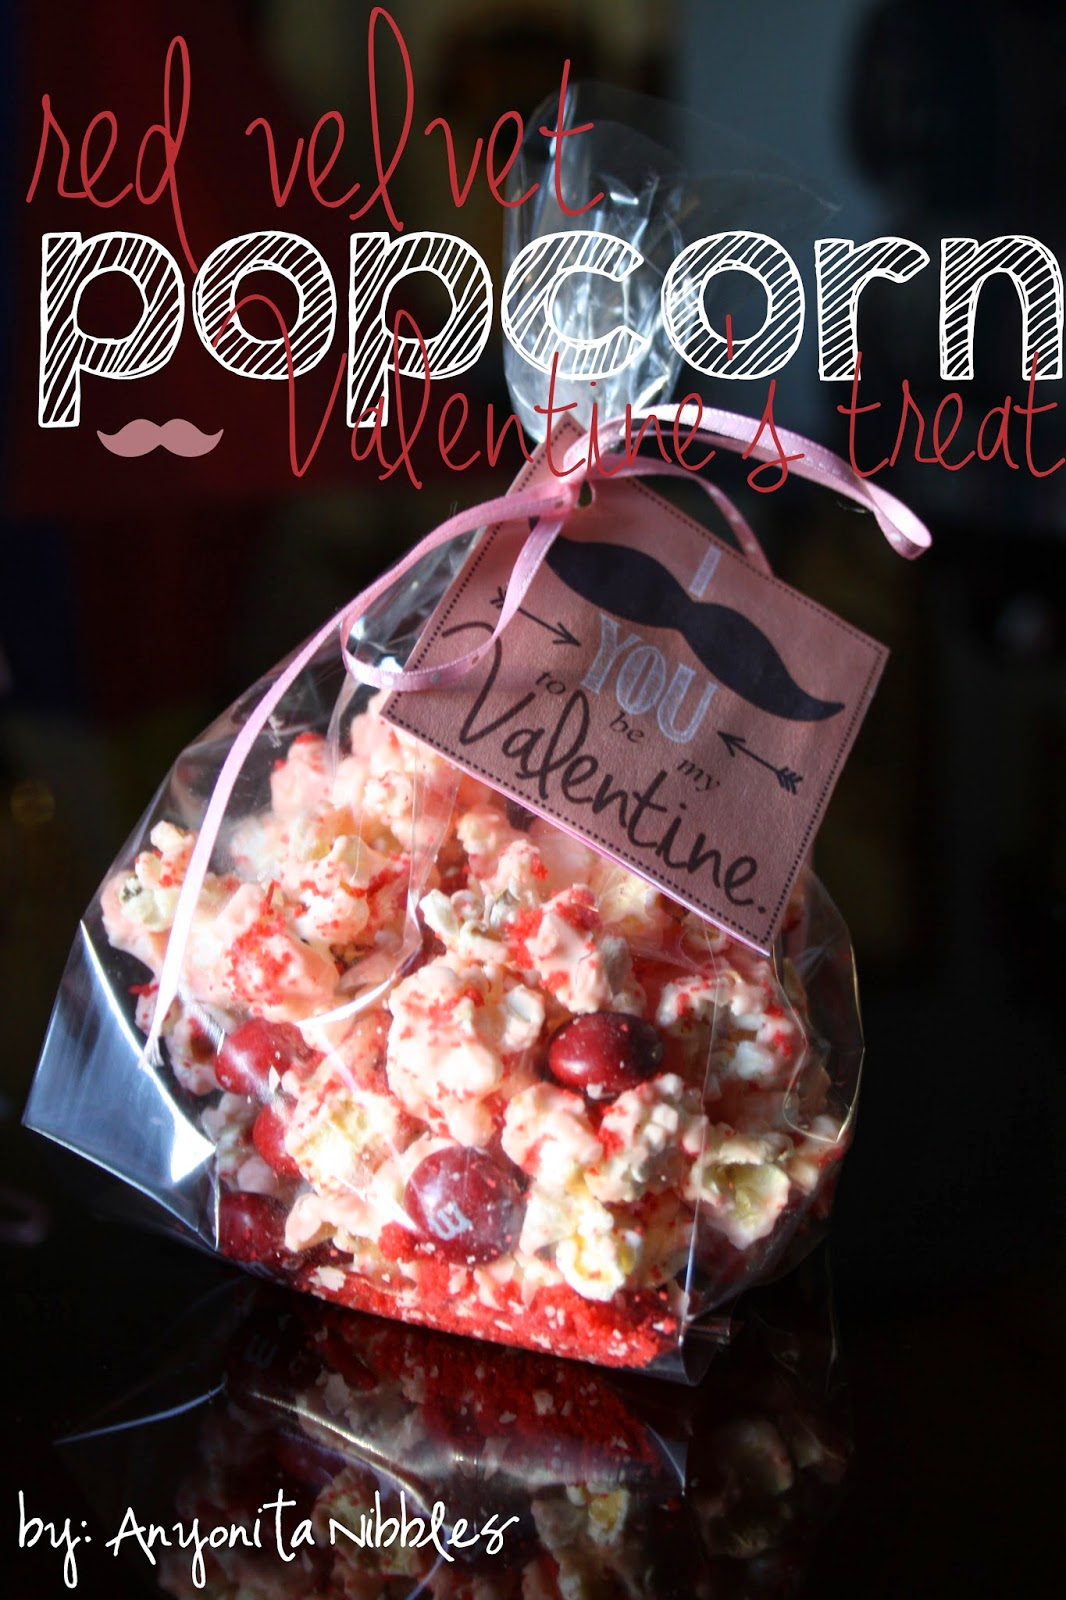 Red Velvet Popcorn Valentine'sTreat with Mustache Printable from www.anyonita-nibbles.co.uk